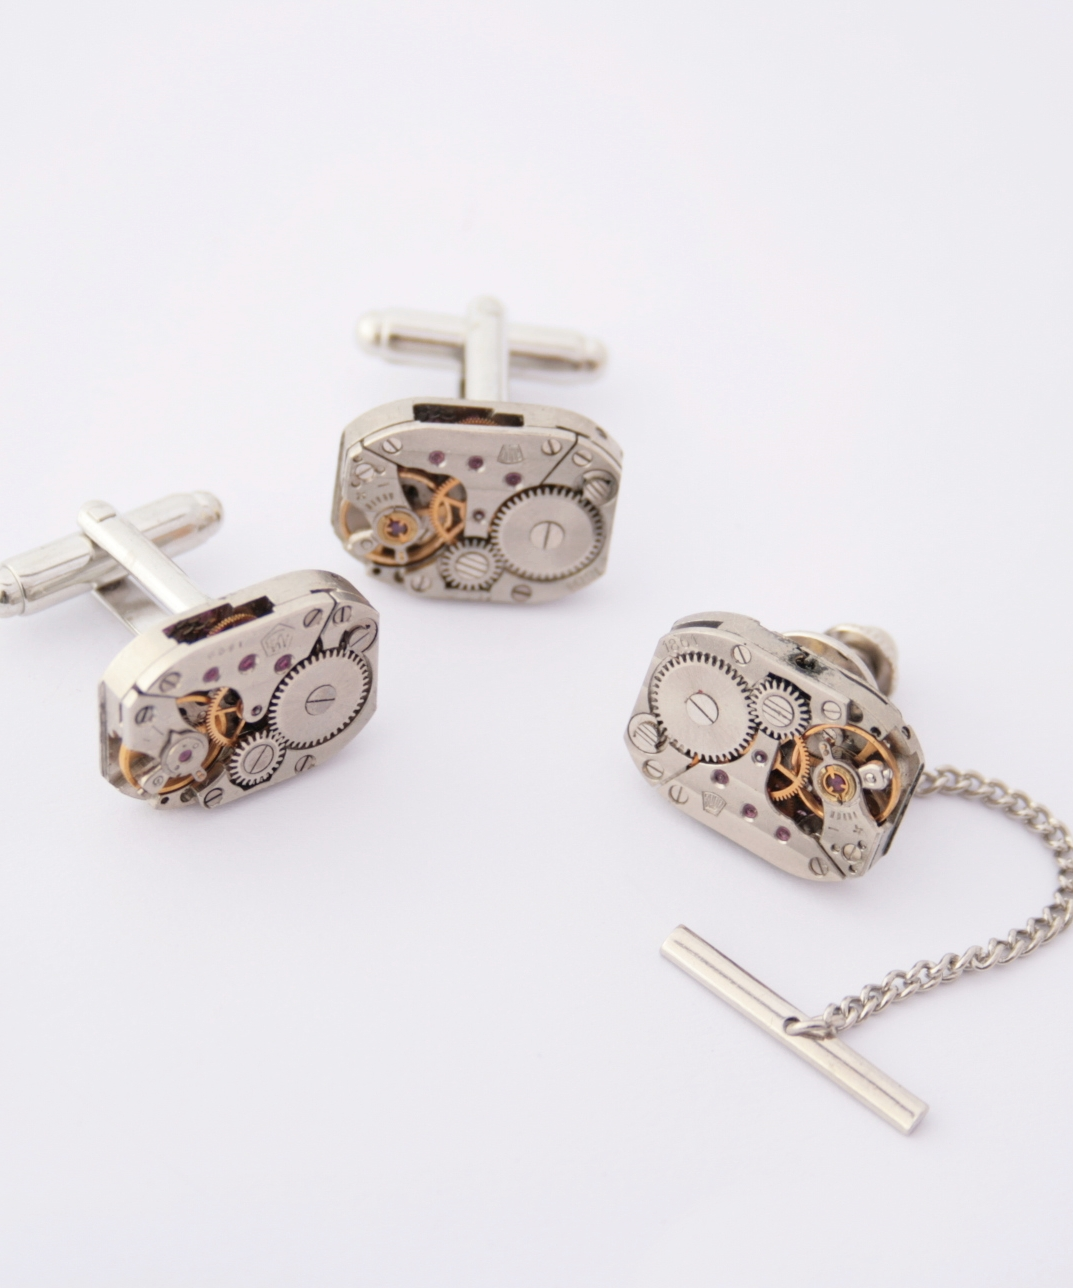 Cufflinks and Tie Tack with Chain with Watch Movements